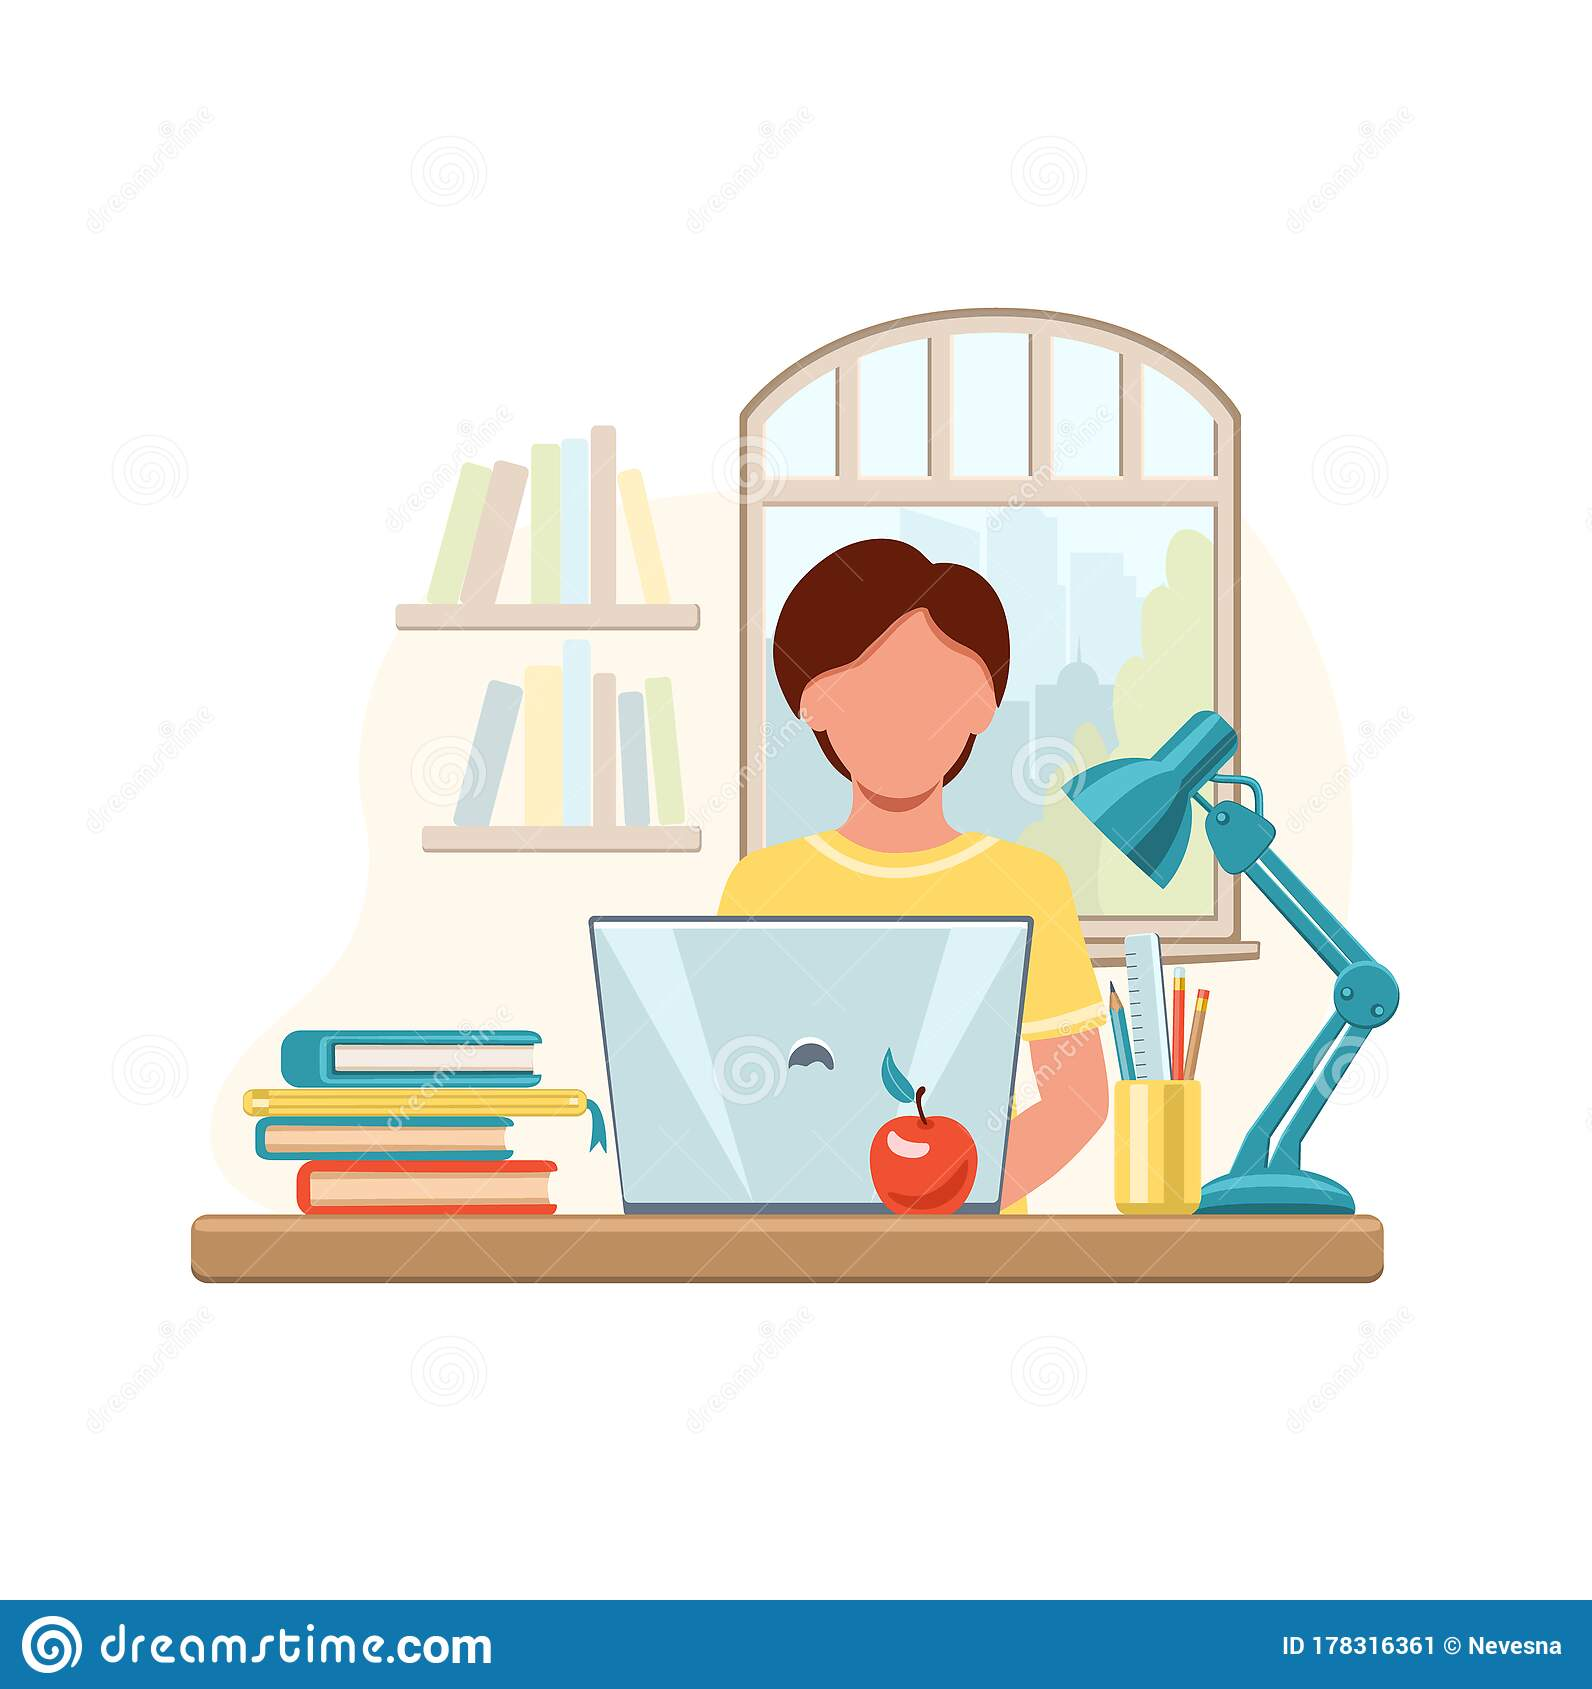 Cartoon Boy Studying At Home With Computer And Books On Window Background School Boy Writing For Homework Online Education Stock Vector Illustration Of Internet Character 178316361